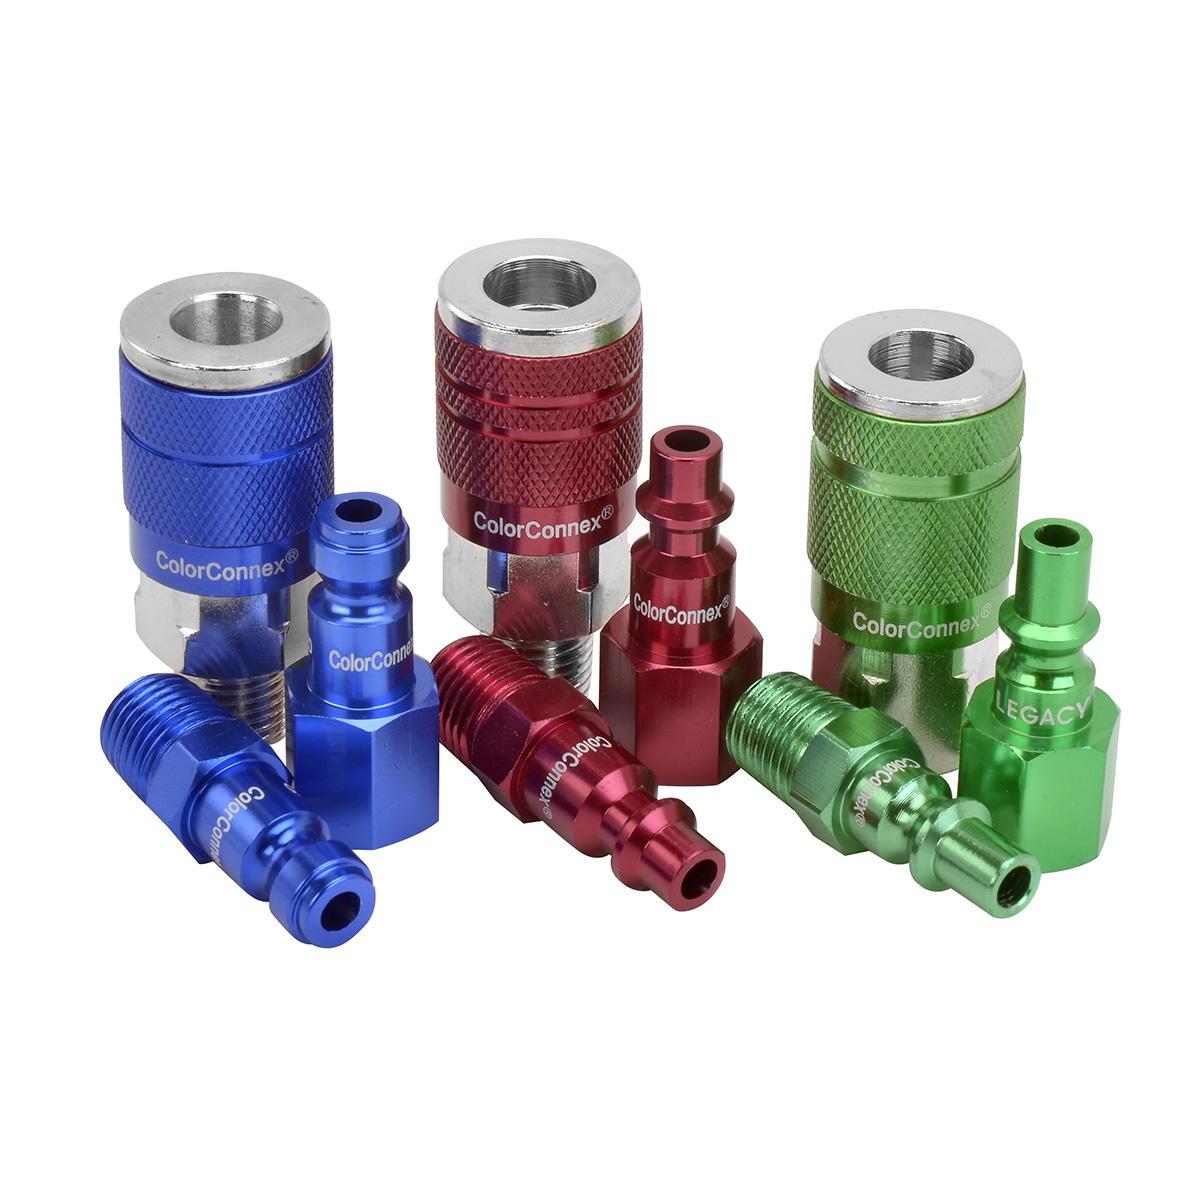 Colorconnex coupler and plugs legacy manufacturing